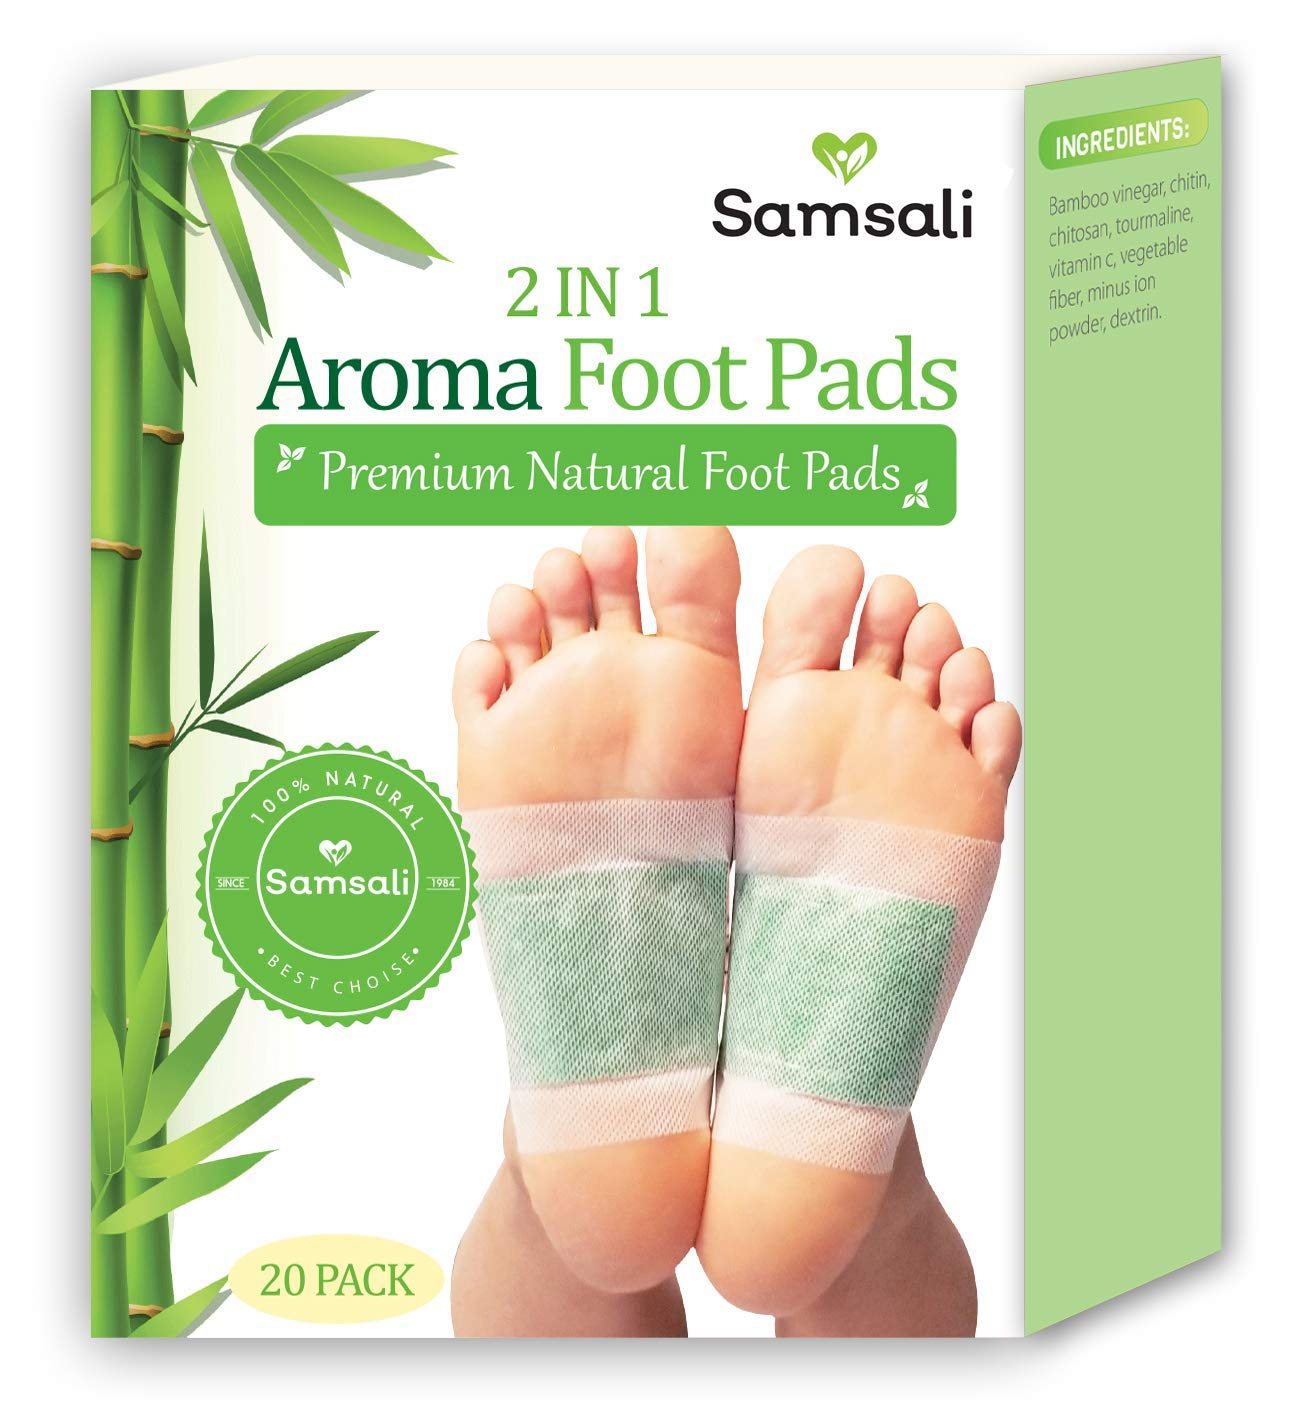 Samsali Foot Pads, Upgraded 2 in 1 Nature Foot Pads, Rapid Foot Care and Pain Relief, Higher Efficiency Than Foot Sleeve and Metatarsal Pads, Best Foot Pads for Foot Care, 20 Packs by Samsali